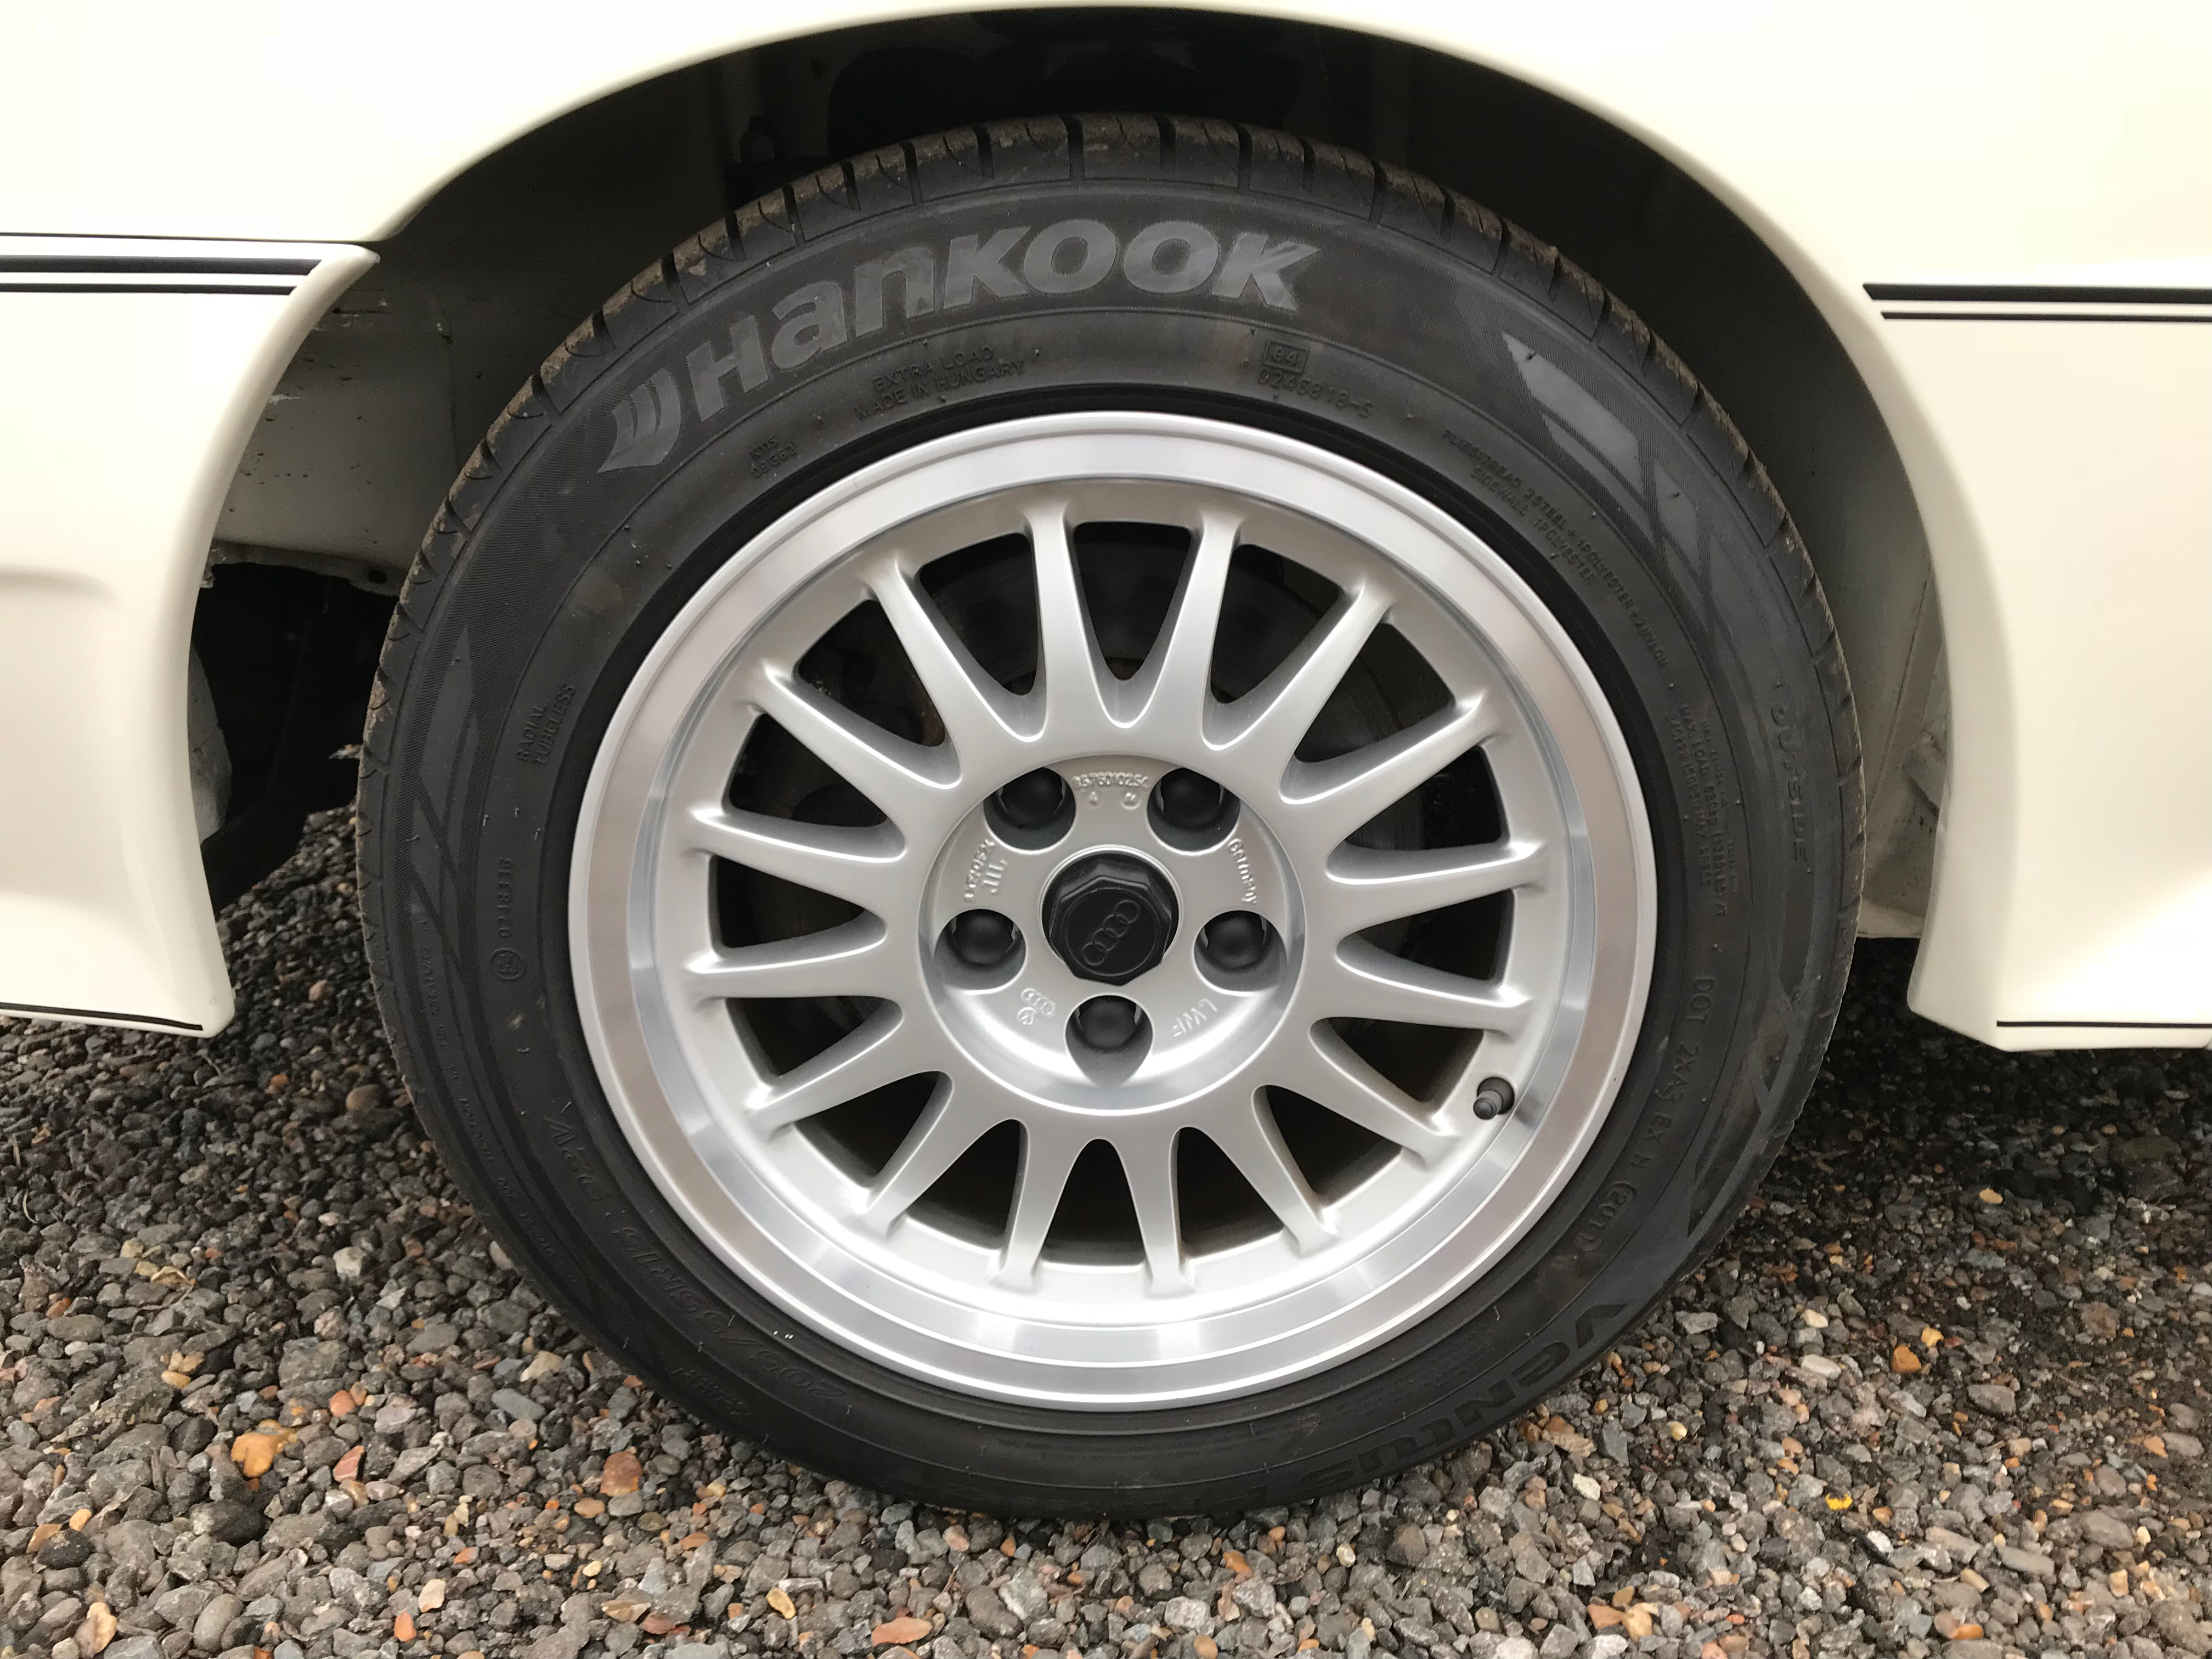 Immaculate-vw-audi-quattro-for-sale